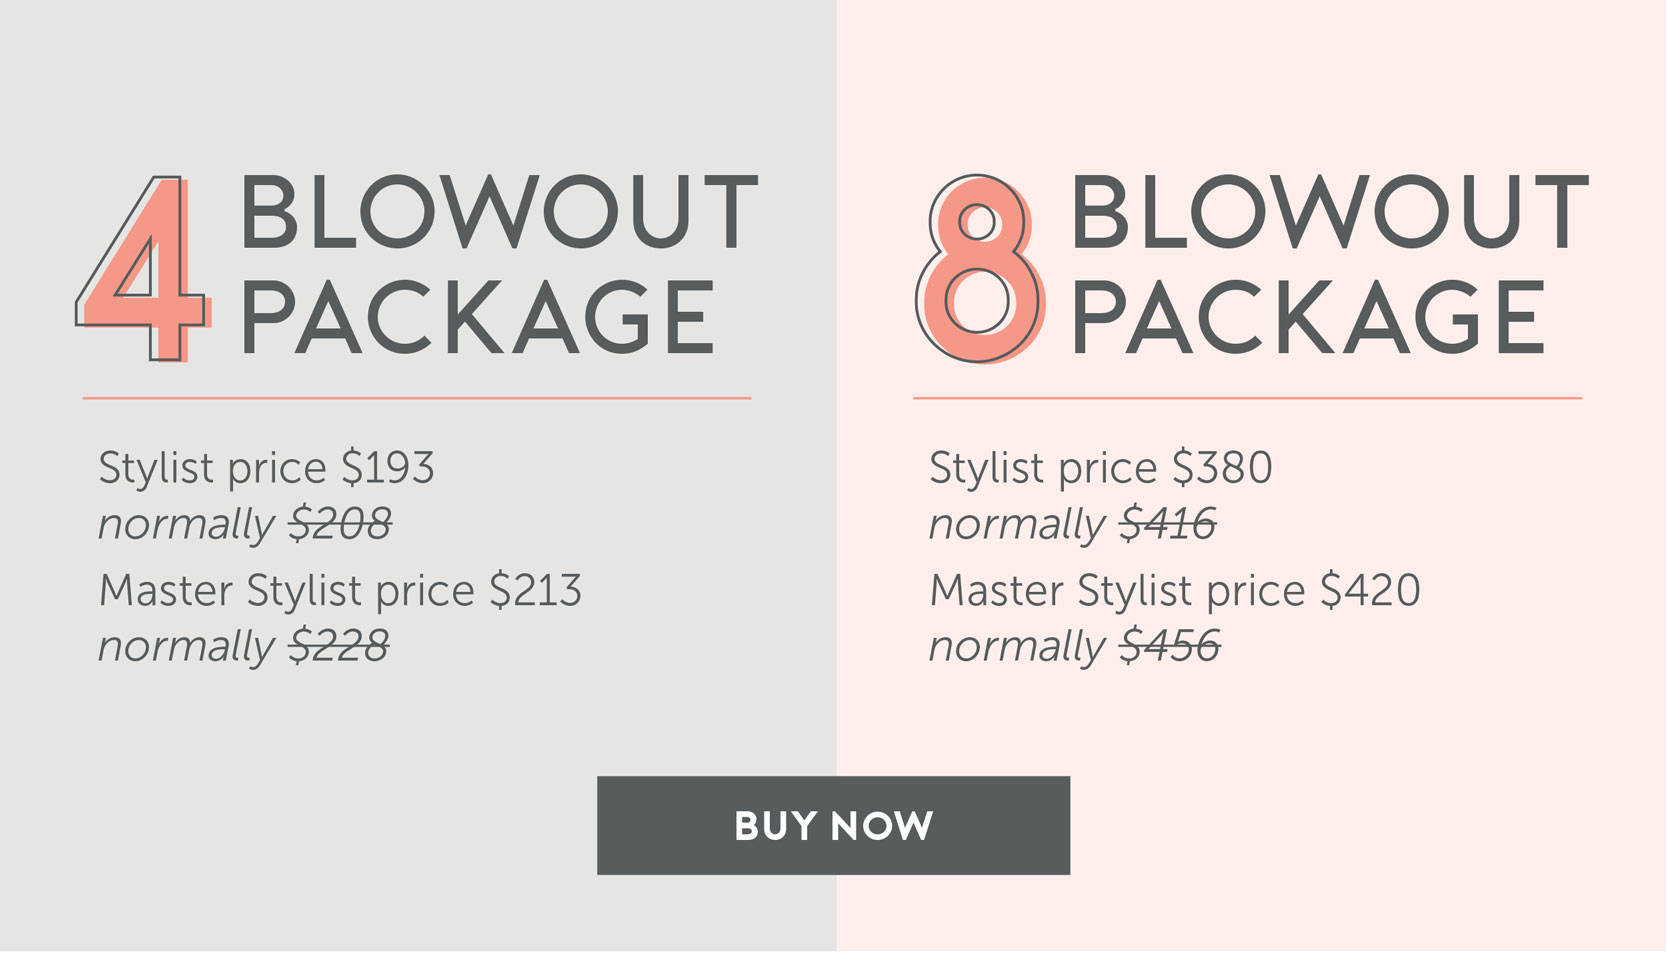 4 Blowout Package - Stylist price $193/Normally $208, Master price $213/normally $228 | 8 Blowout Package - Stylist Price $380/Normally $416 Master Price - $420/normally $456